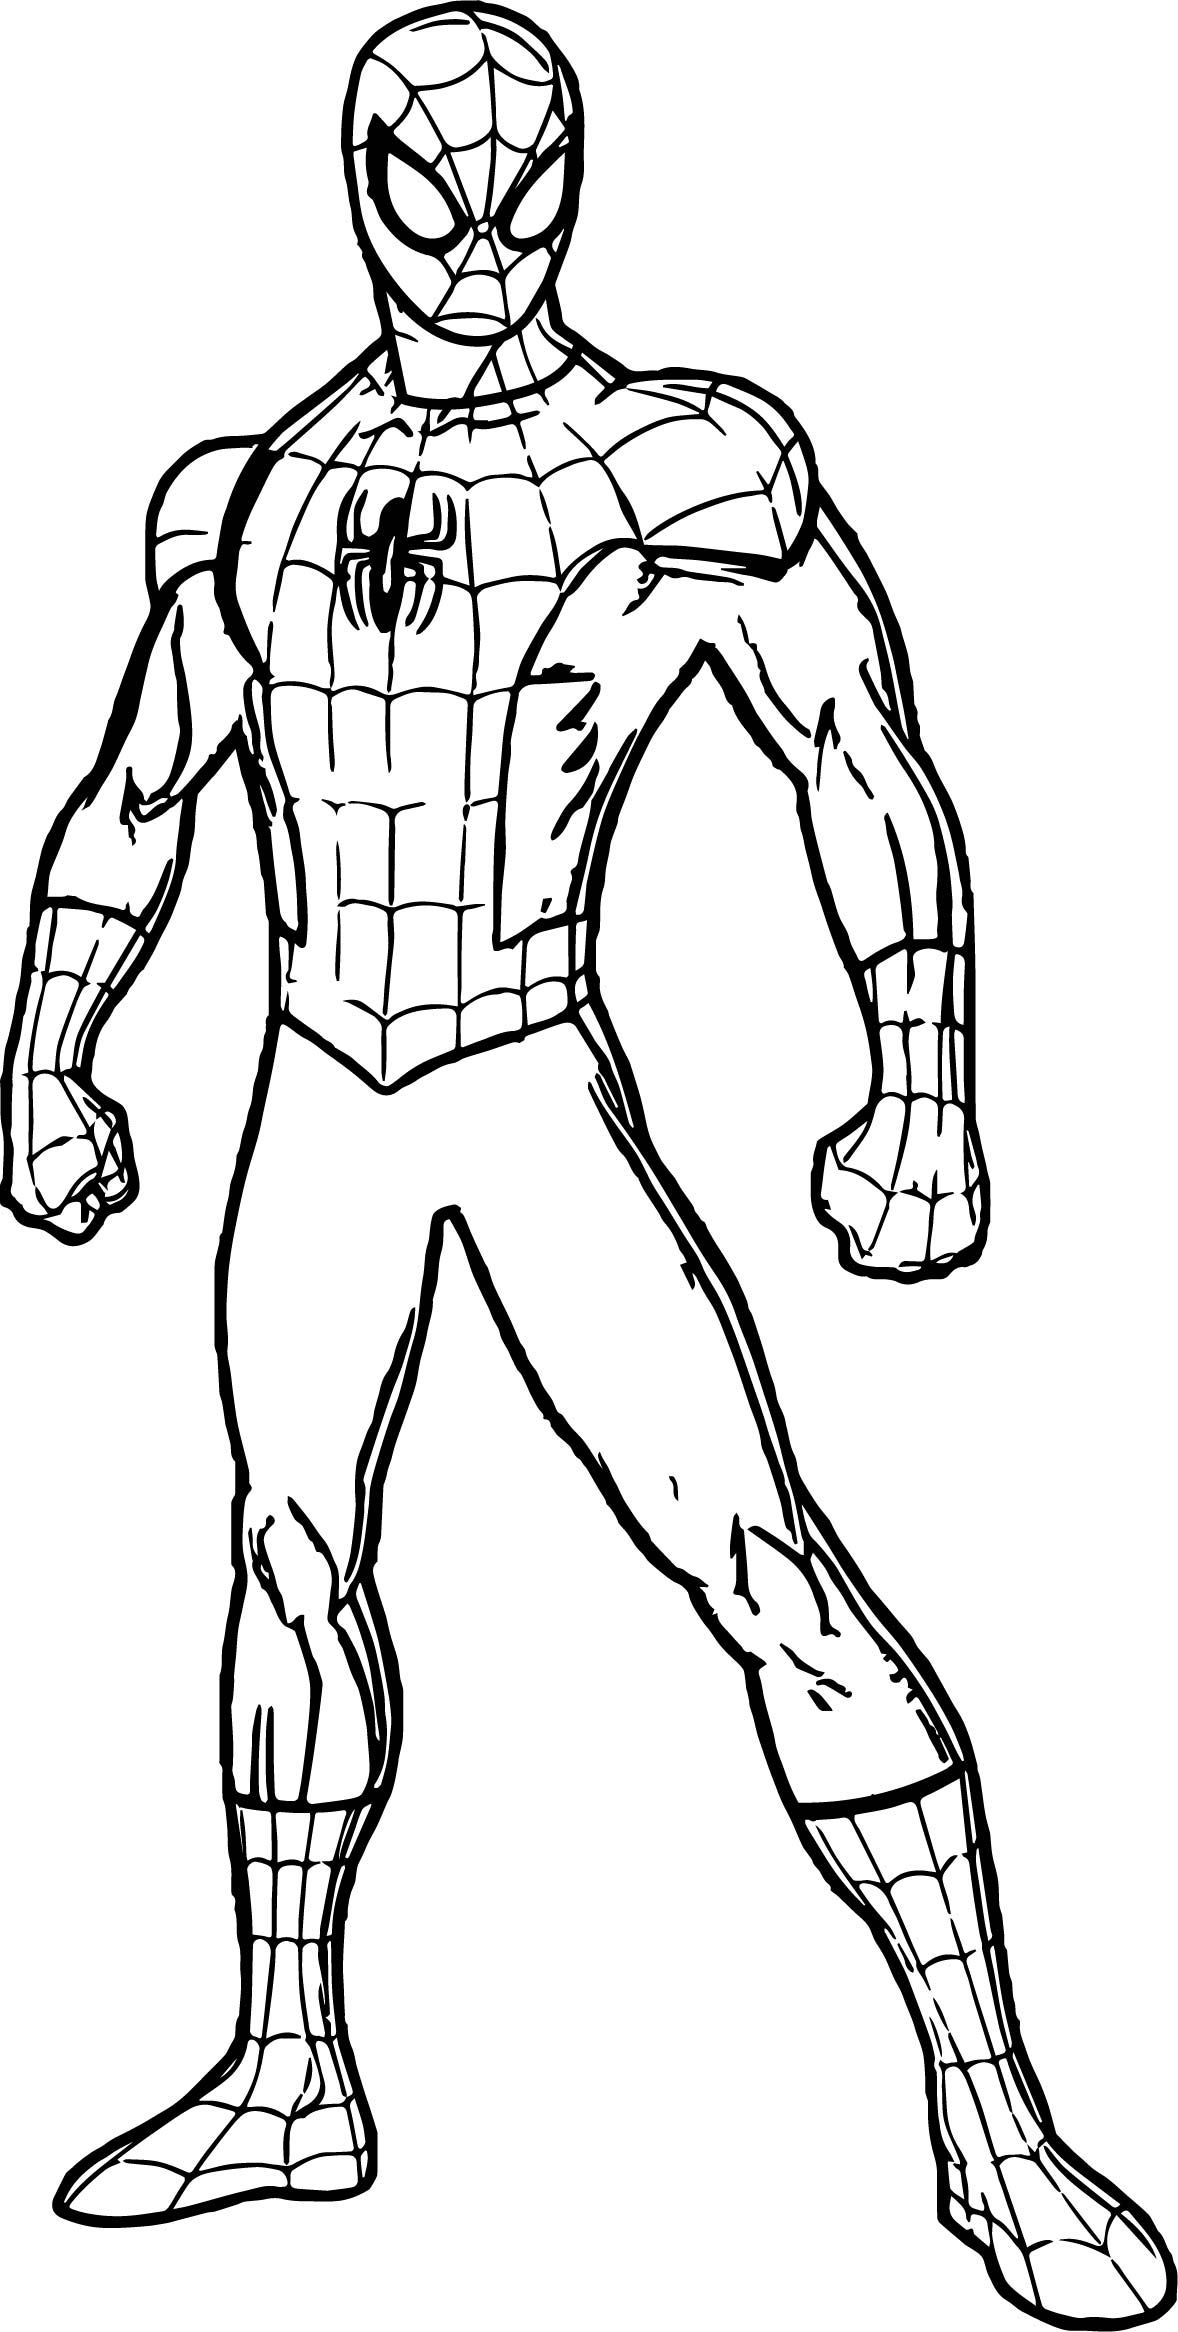 Spidey Spider Man Coloring Page